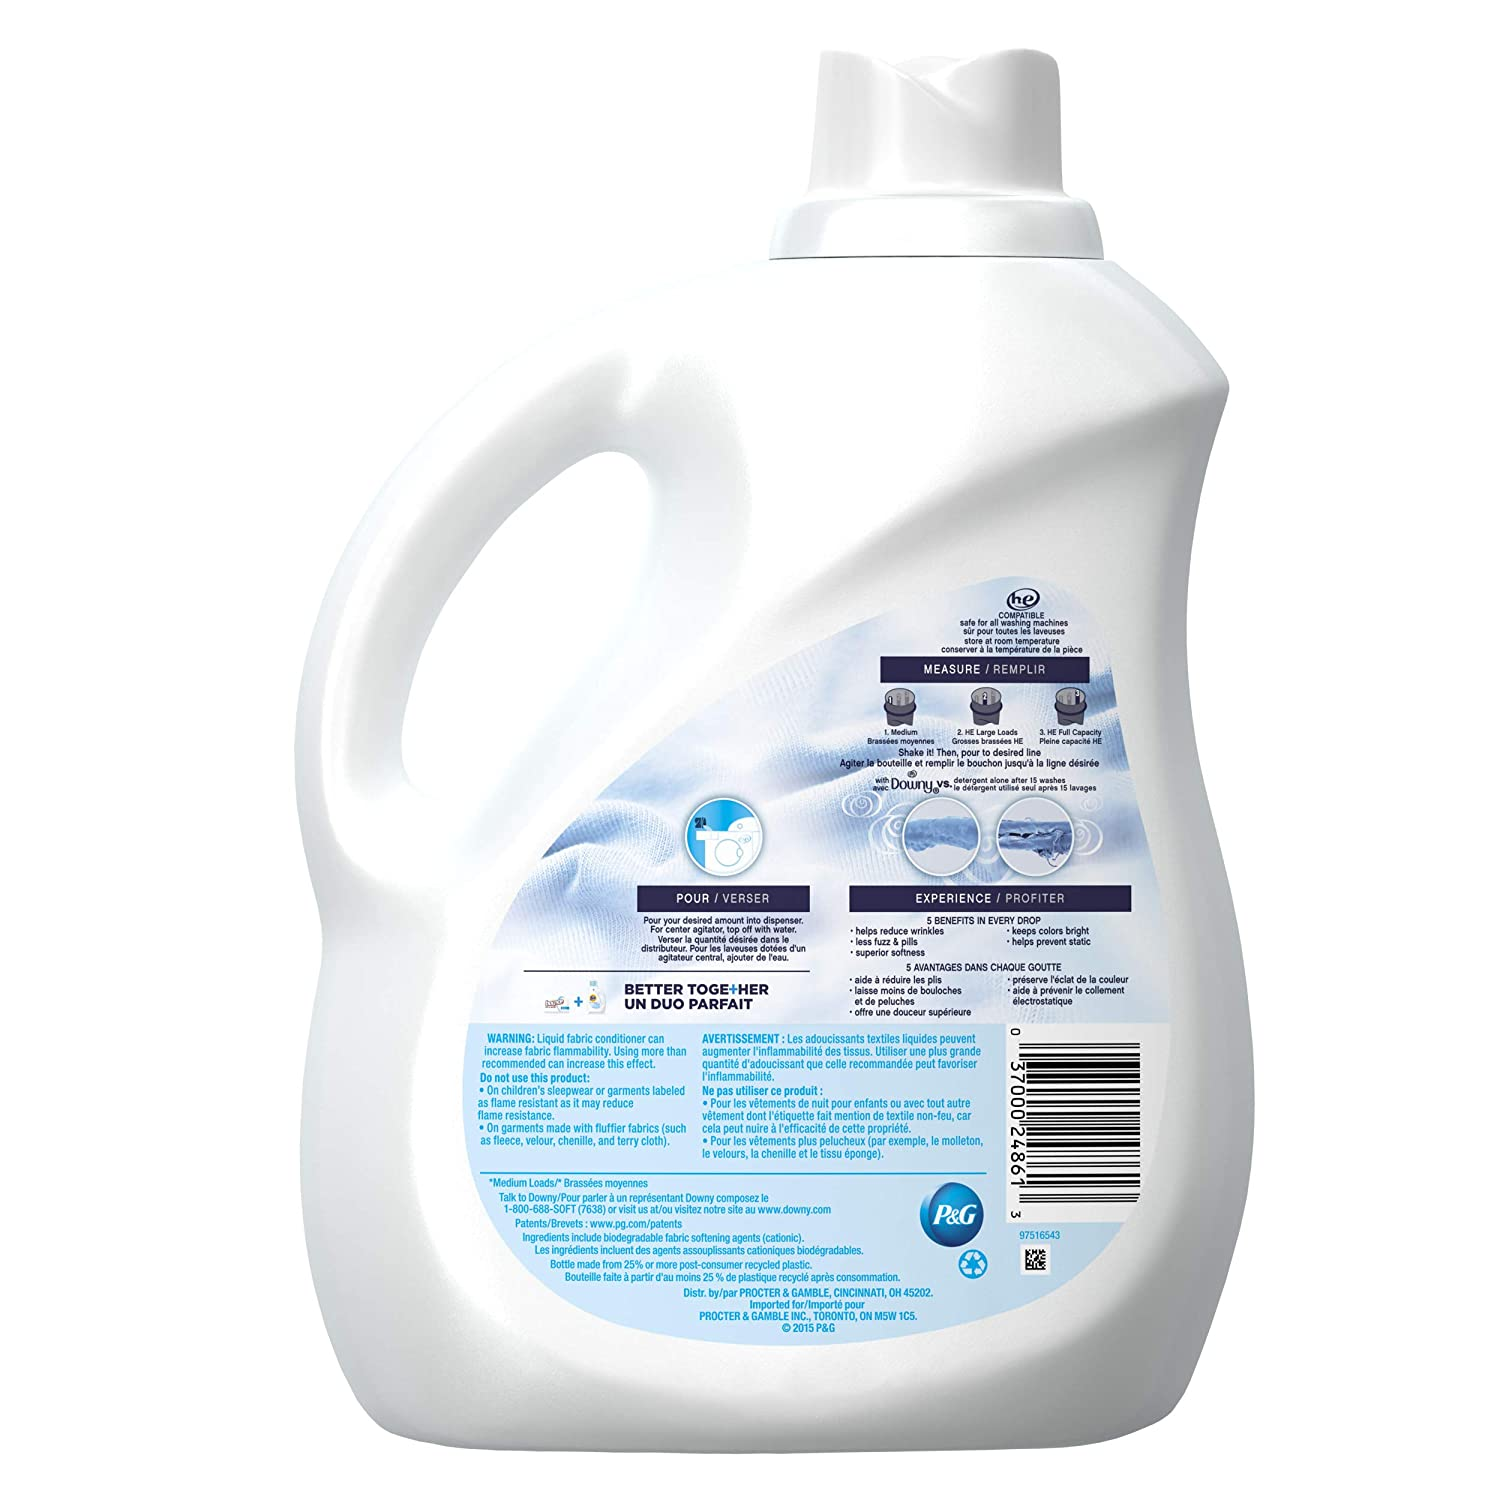 Downy Ultra Free & Gentle Liquid Fabric Conditioner (Fabric Softener), 120 Loads, 103 fl oz (Packaging May Vary): Prime Pantry